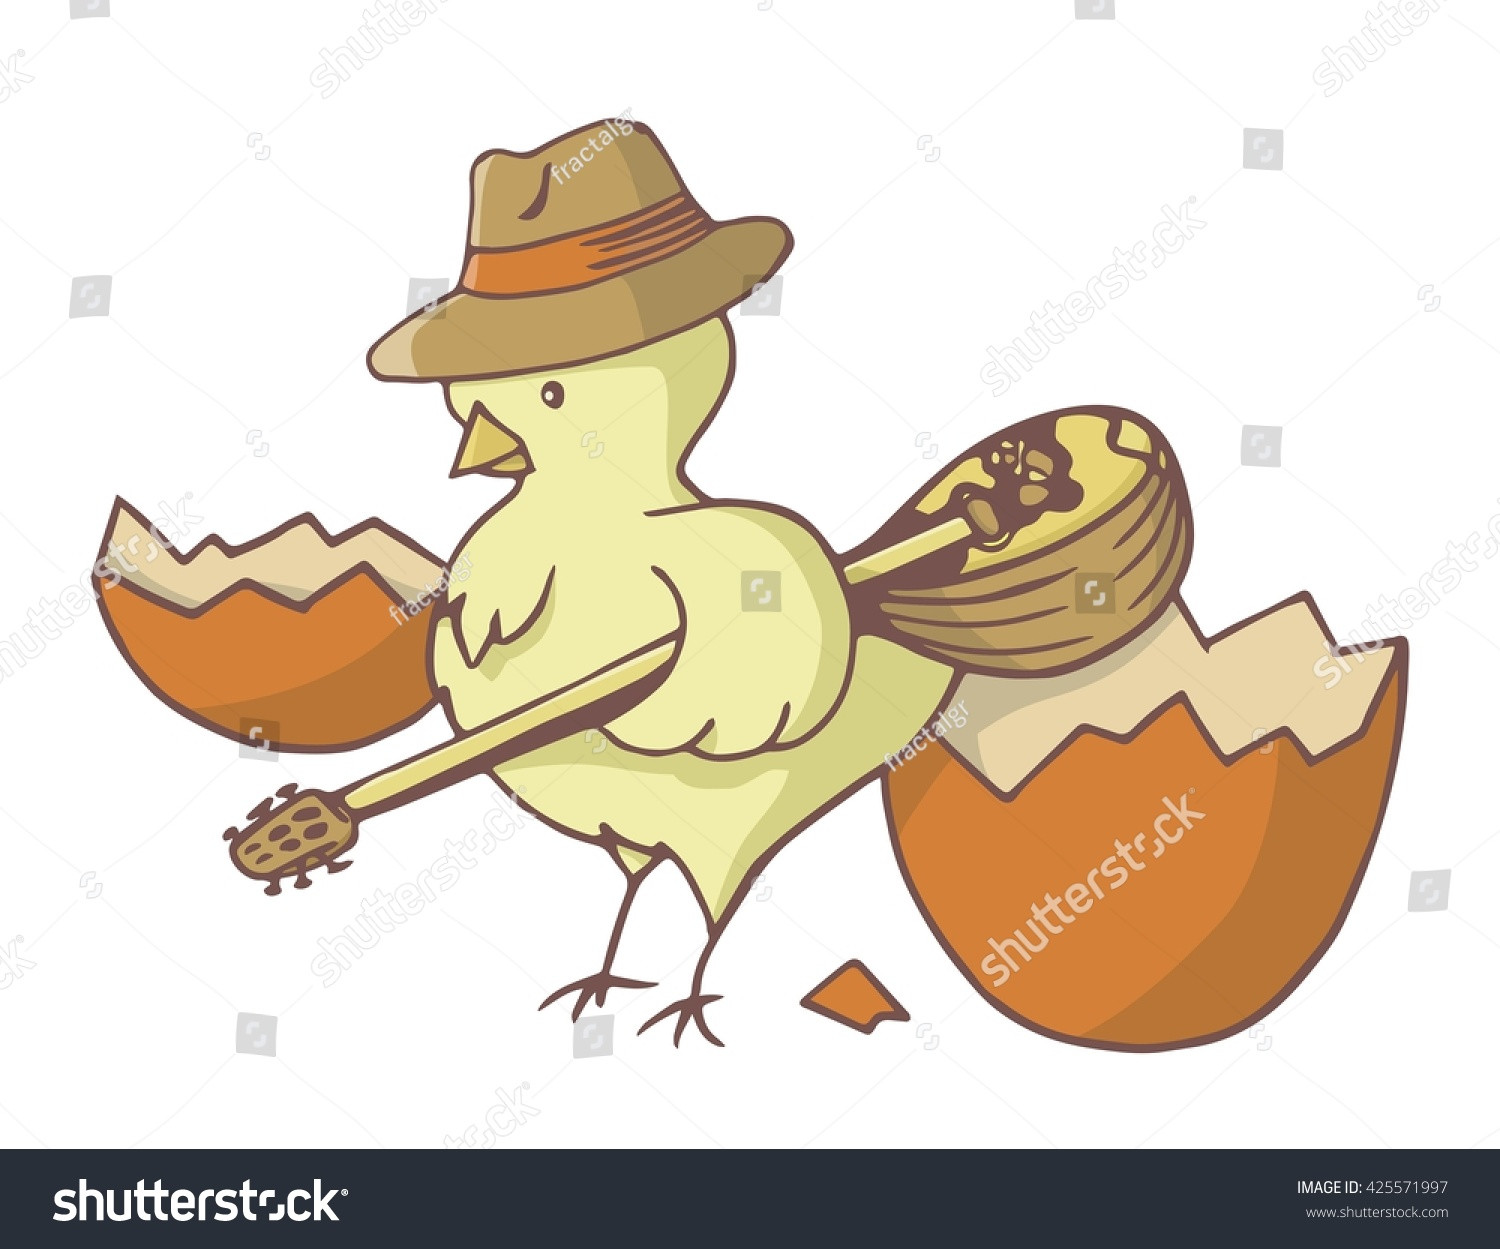 Yellow Chick Bird Just Out Of The Easter Egg Wearing A Hat And Holding Bouzouki